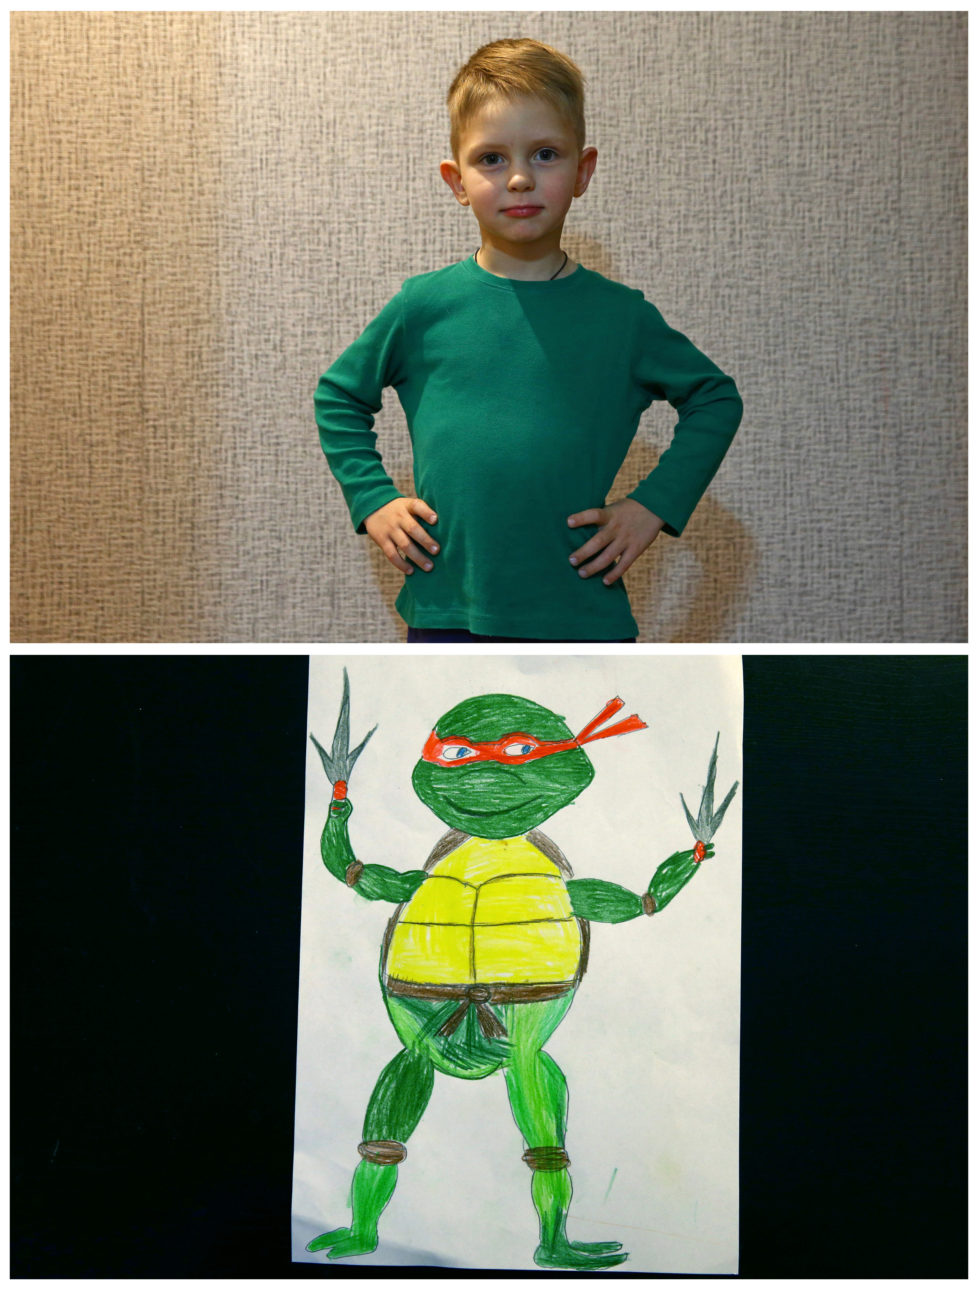 "A combination picture shows Dmitriy Kuchur, 5, posing for a photograph at his house (top) and his drawing of what he wants to get for Christmas from Santa, in Minsk, Belarus, November 23, 2016. Dmitriy wants Teenage Mutant Ninja Turtles. Reuters photographers around the world asked children to draw what they wanted to receive from Santa for Christmas. REUTERS/Vasily Fedosenko SEARCH ""CHRISTMAS WISHES"" FOR THIS STORY. SEARCH ""WIDER IMAGE"" FOR ALL STORIES. - RTSV37N"